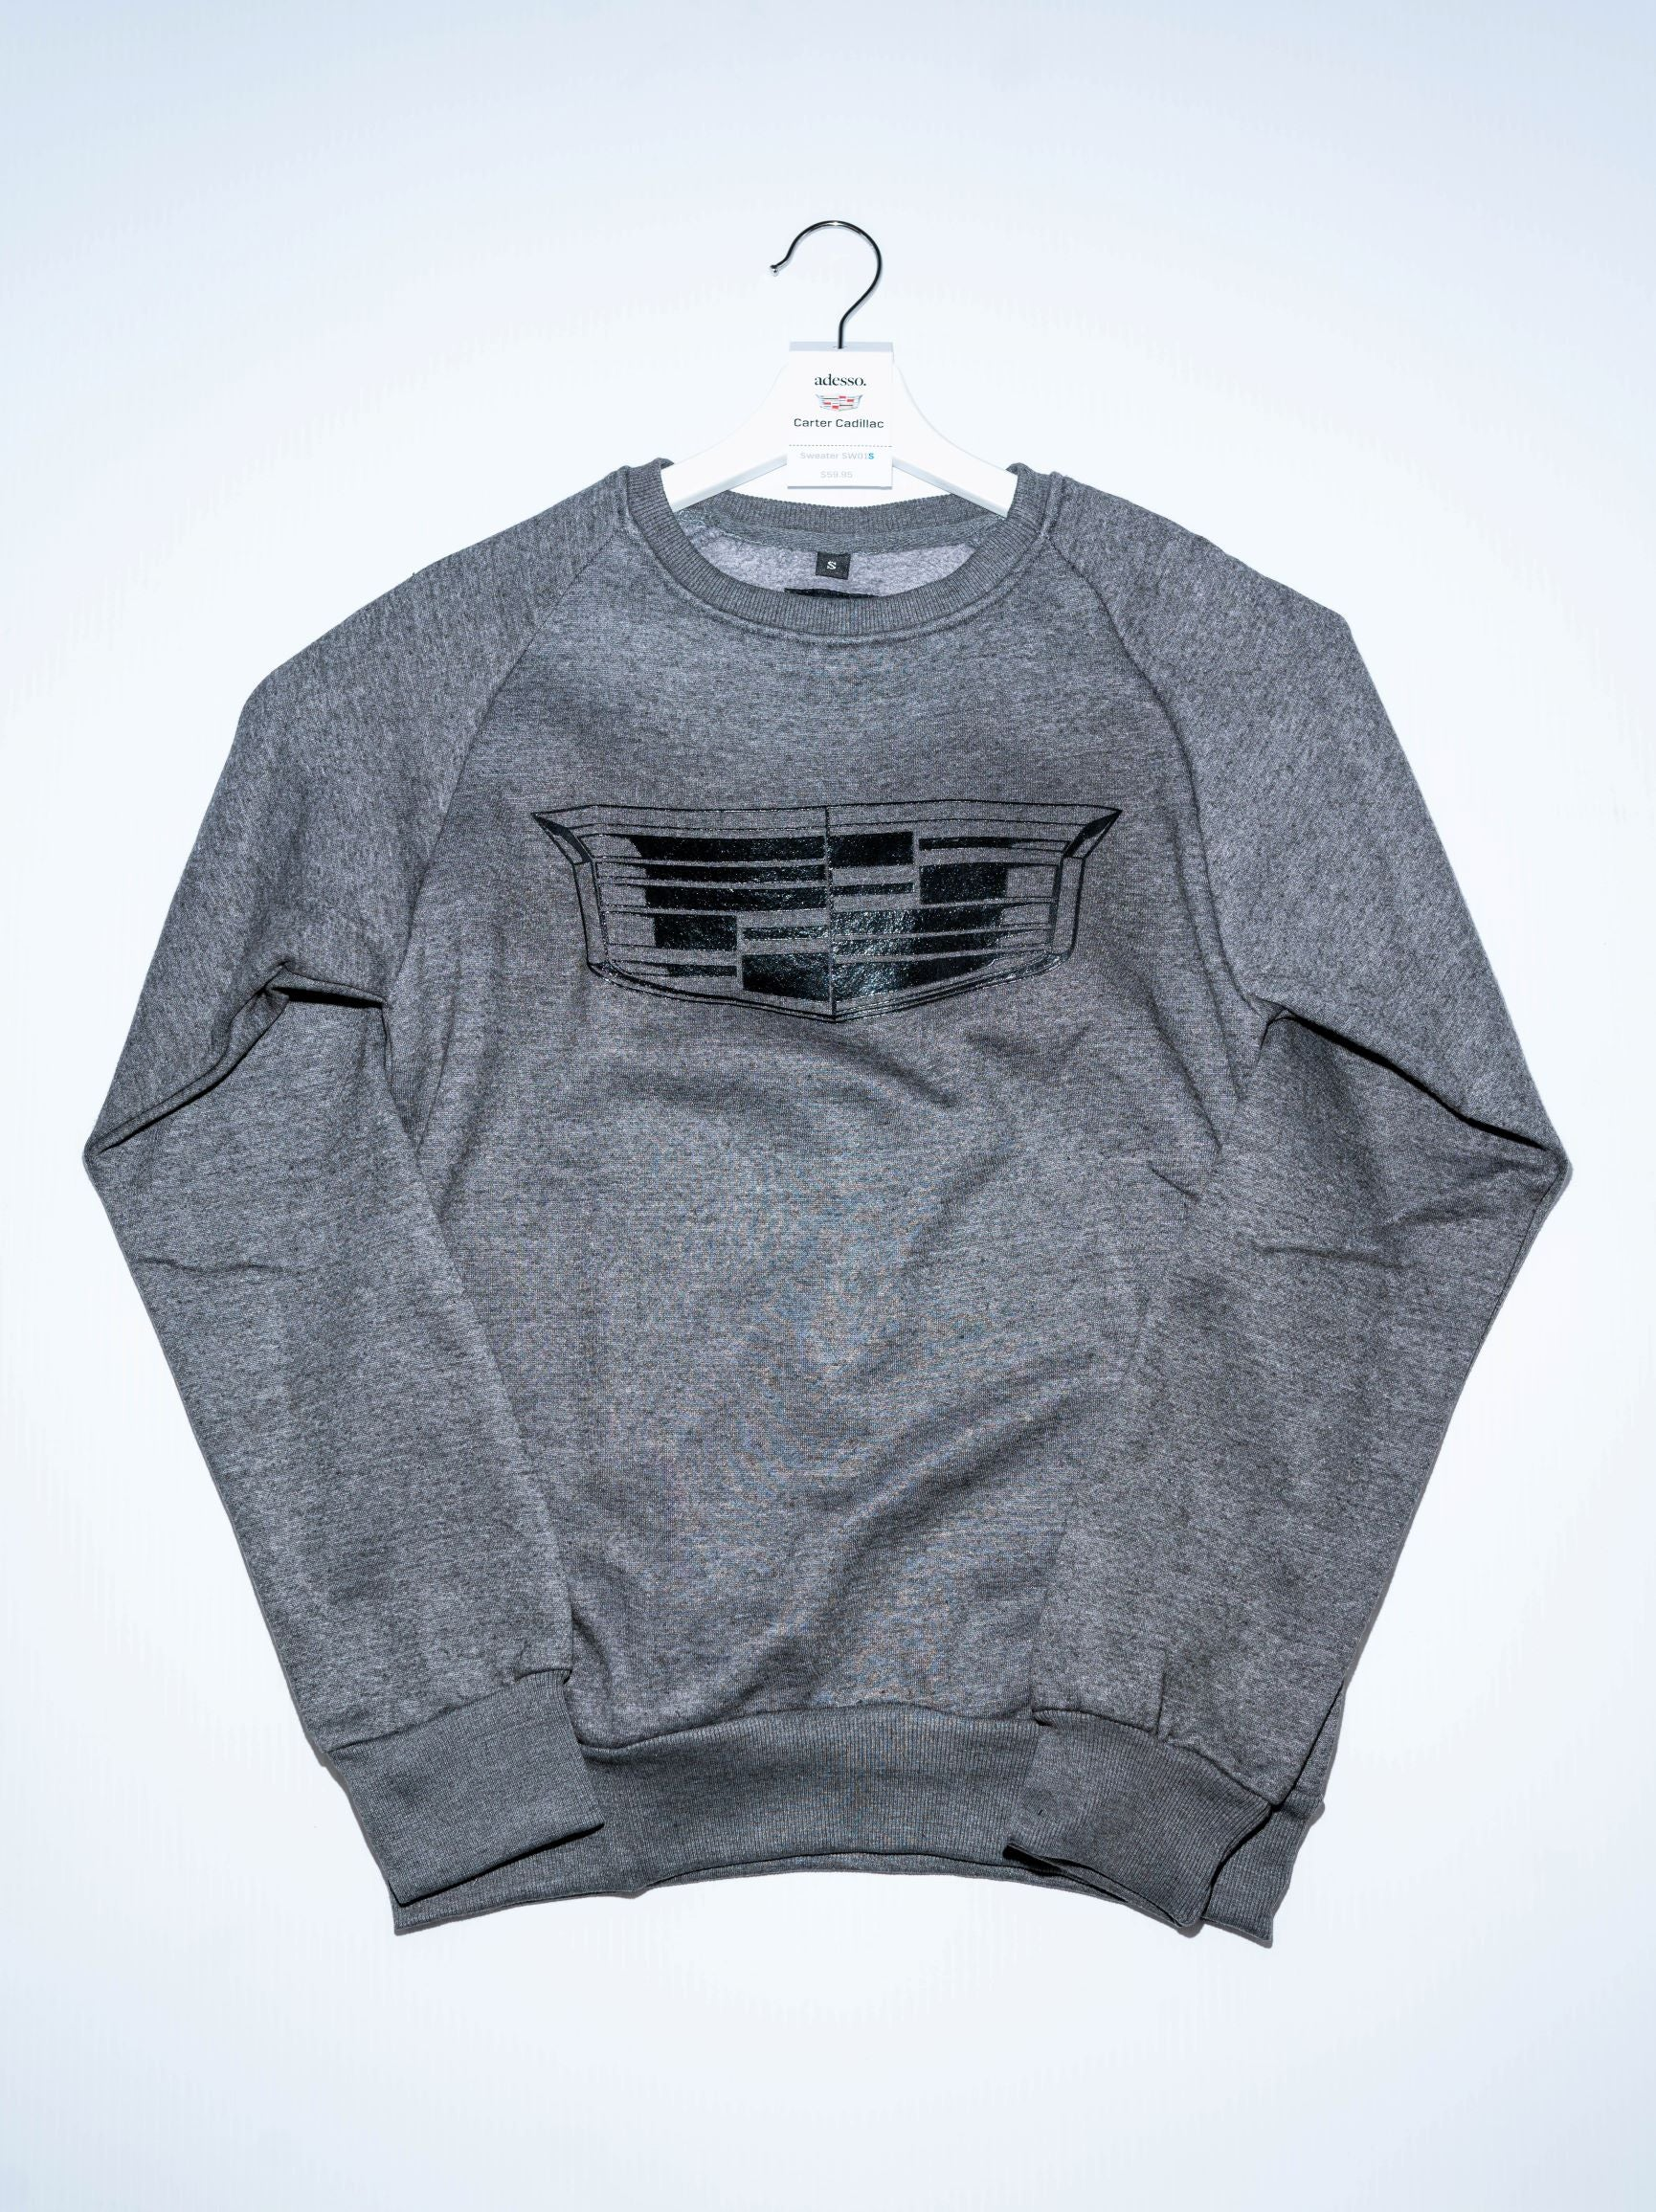 This unisex sweatshirt 100% cotton, and 110% cozy.